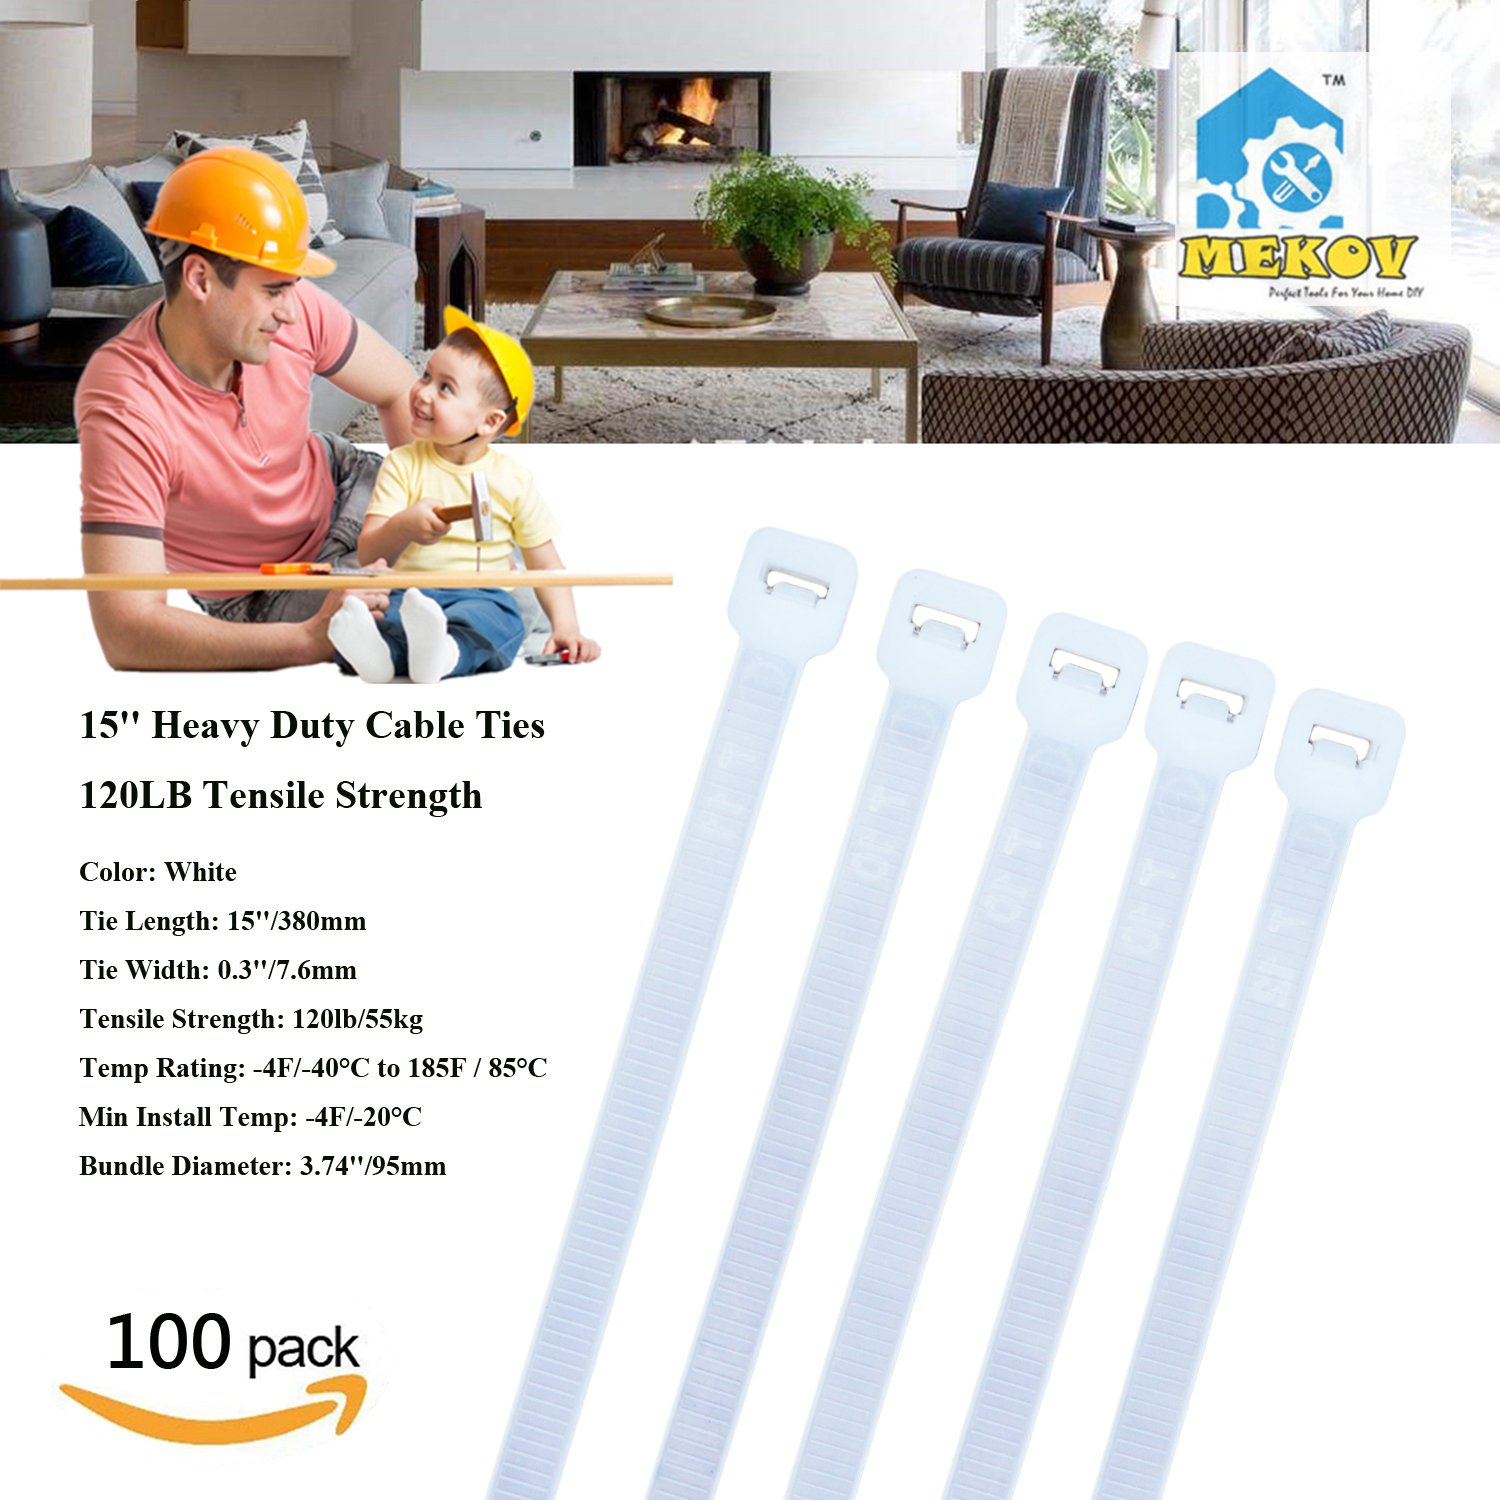 Nylon Cable Ties, Mekov, 15 Inch Heavy Duty Cable Ties, 120-LB Tensile Strength, Zip Ties with 0.3 Inch Width, Durable, Indoor & Outdoor use, UV Resistant (15'', 100 Pack, White)